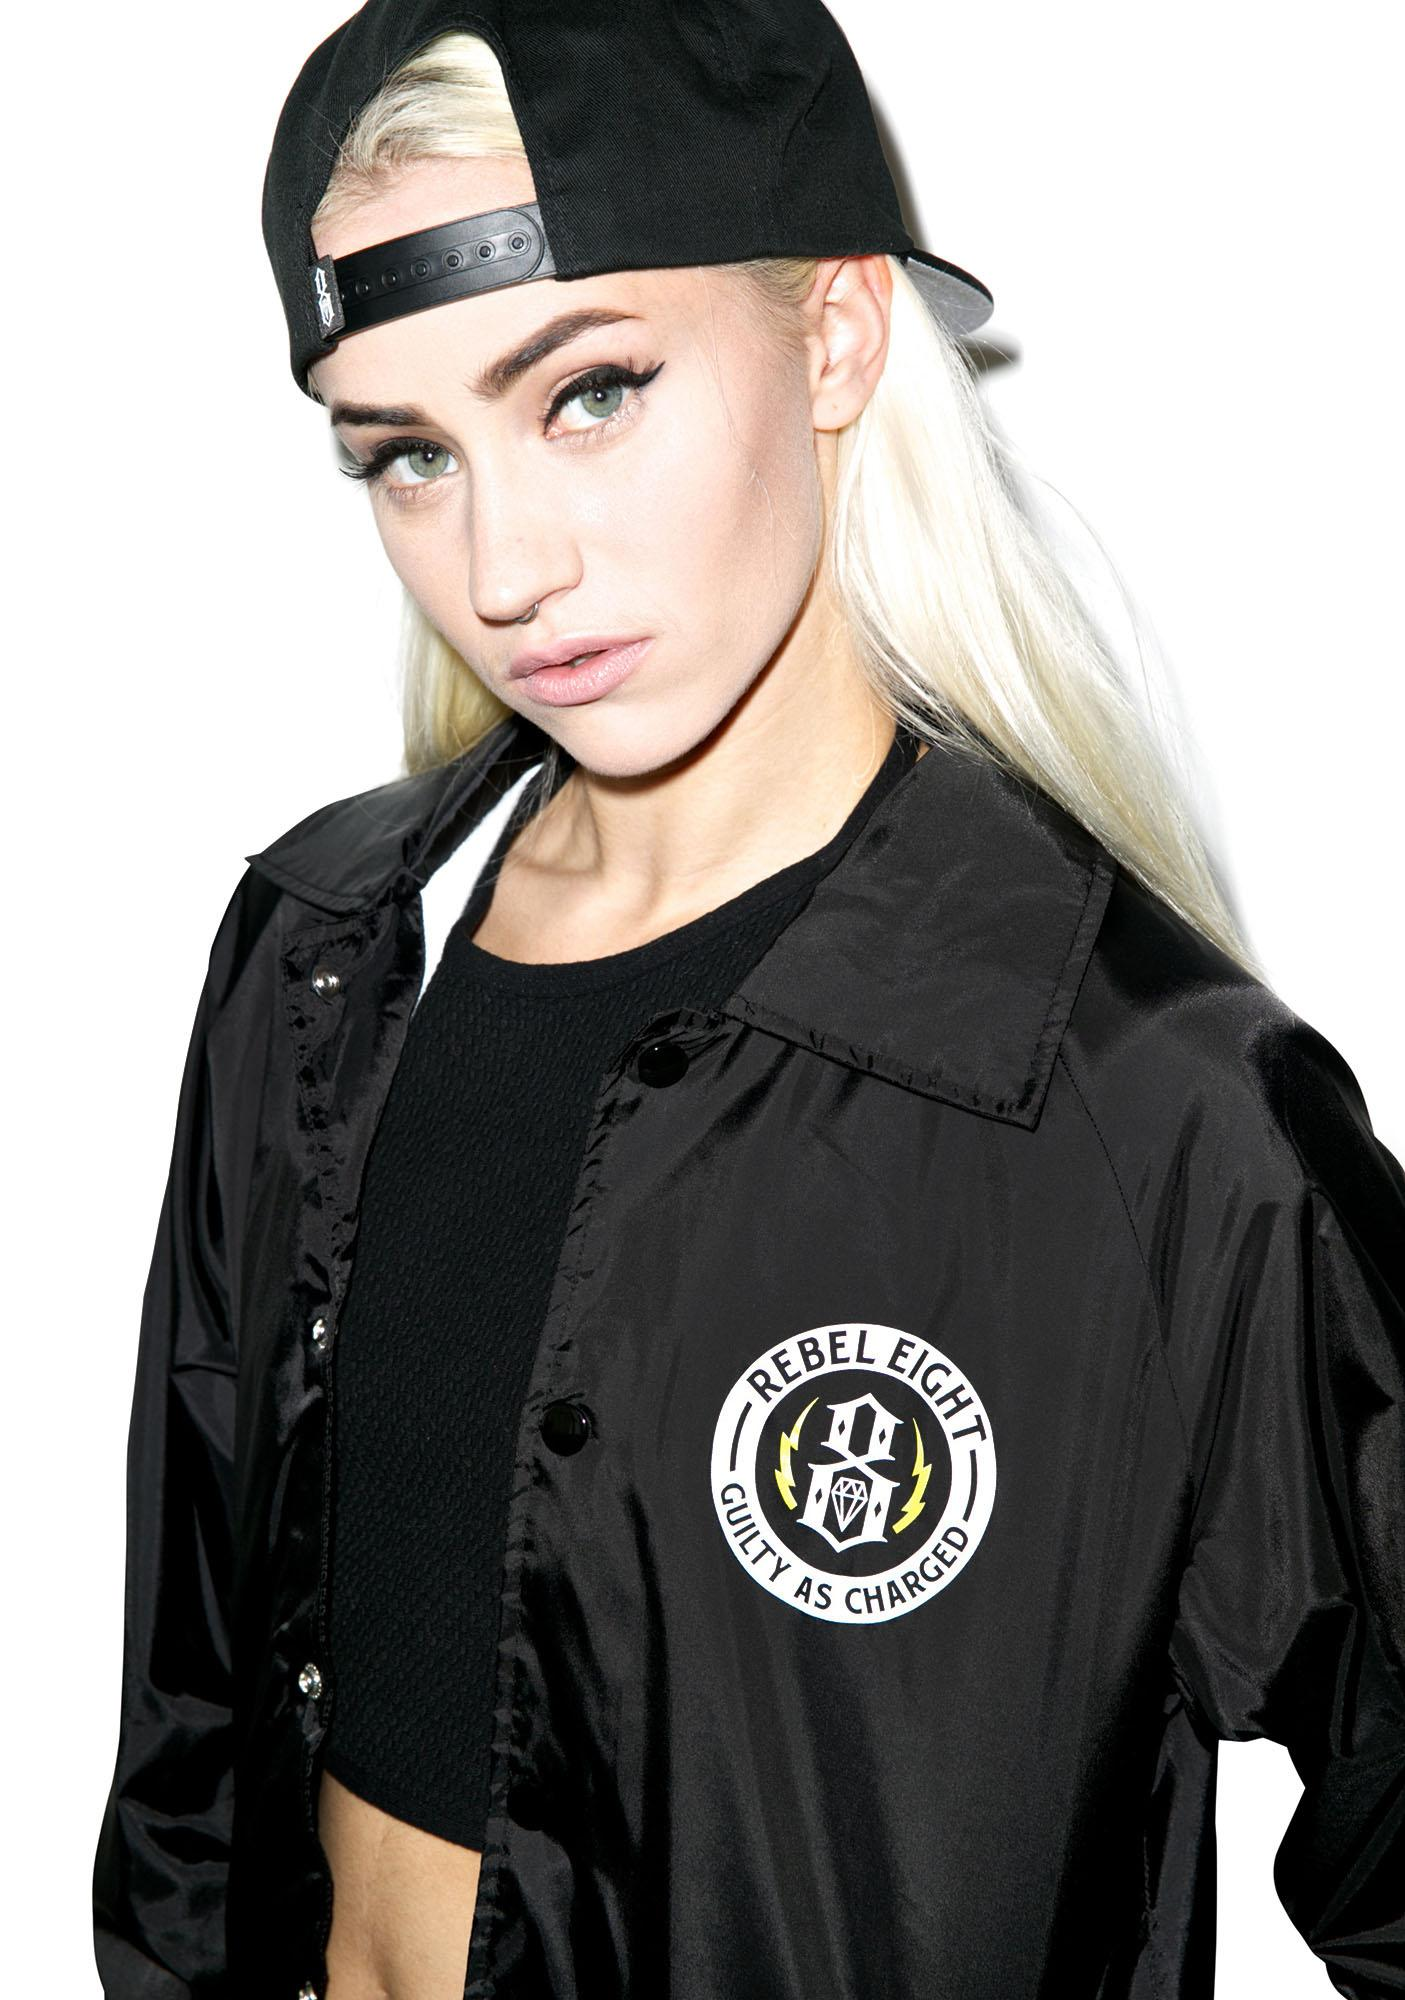 Rebel8 G.A.C. Coaches Jacket